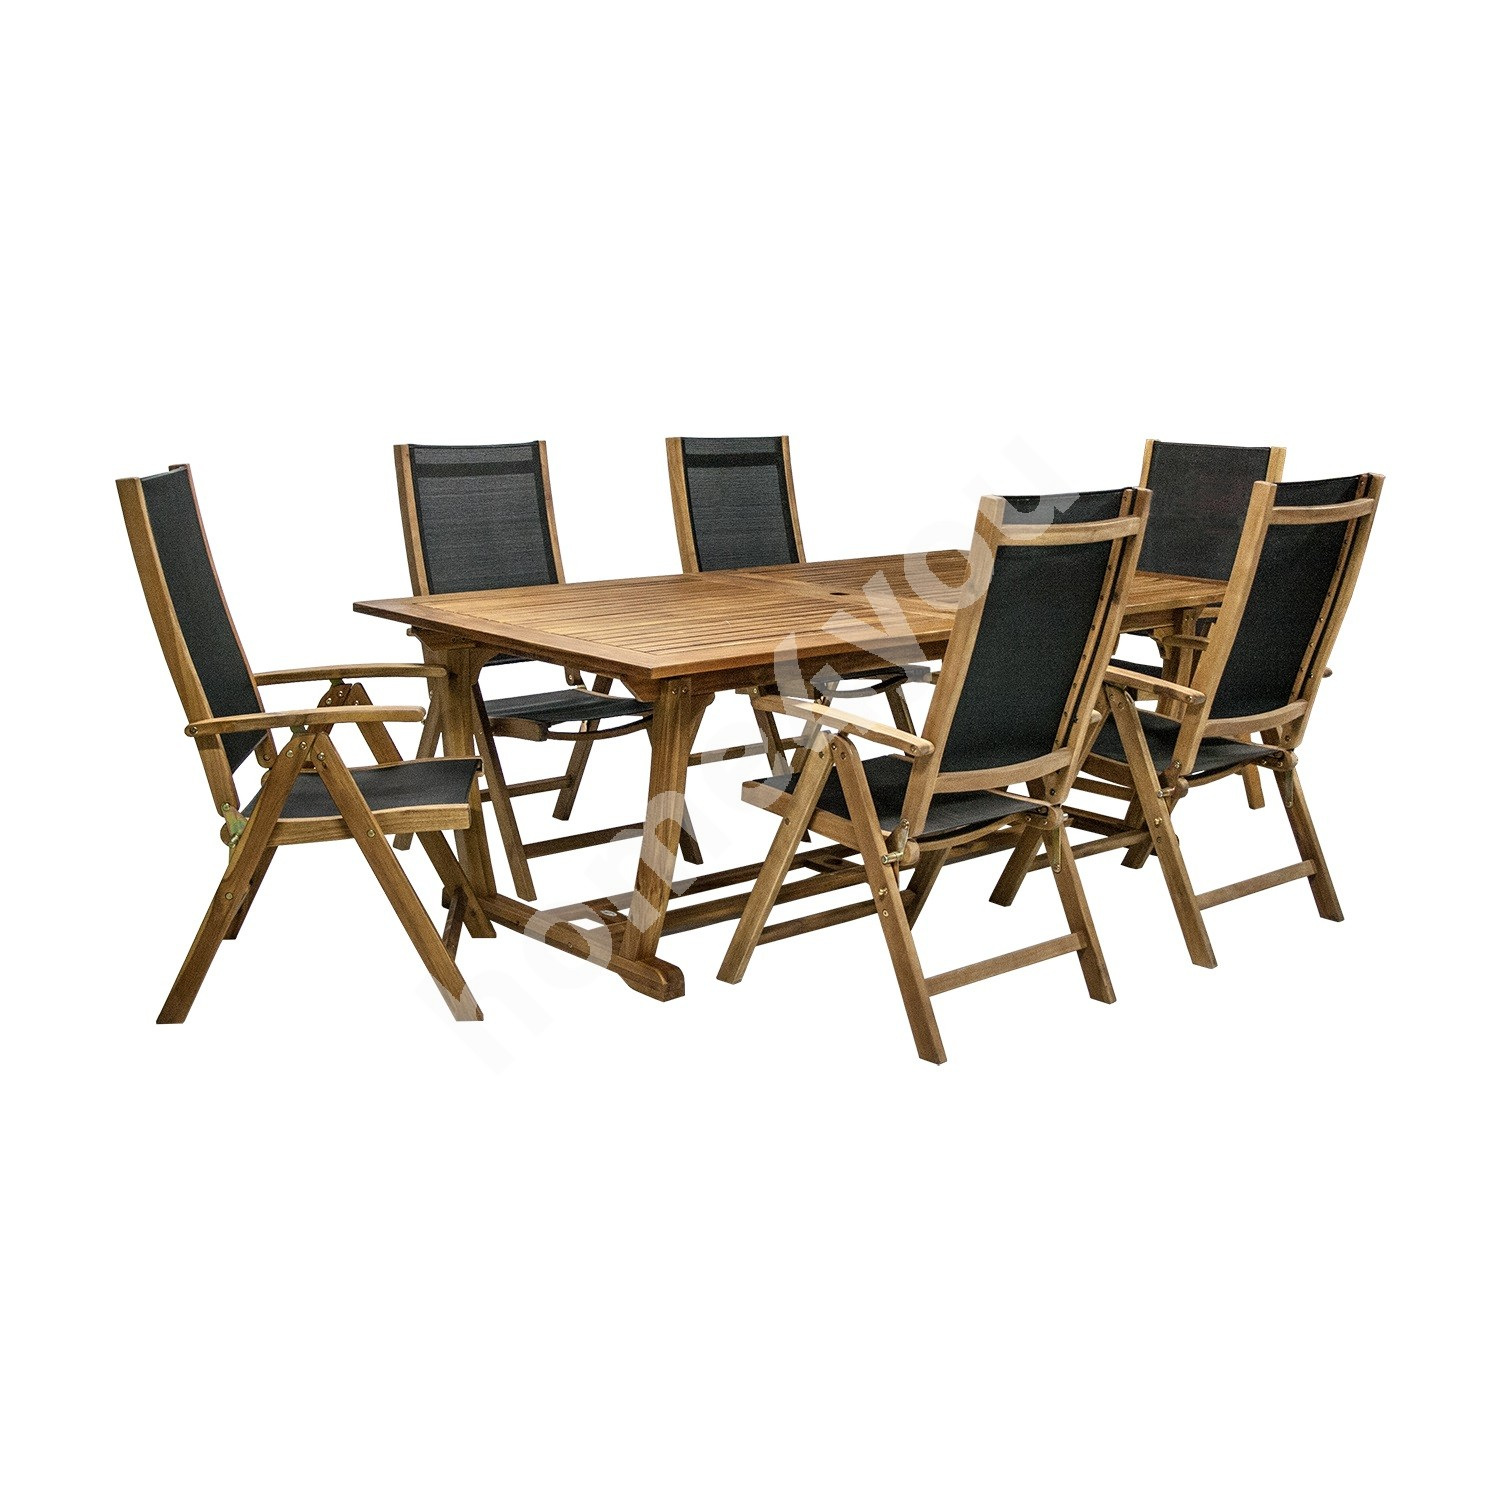 Set FUTURE table and 6 chairs (2782), 210/300x110xH73cm, extendable, wood: acacia, finish: oiled